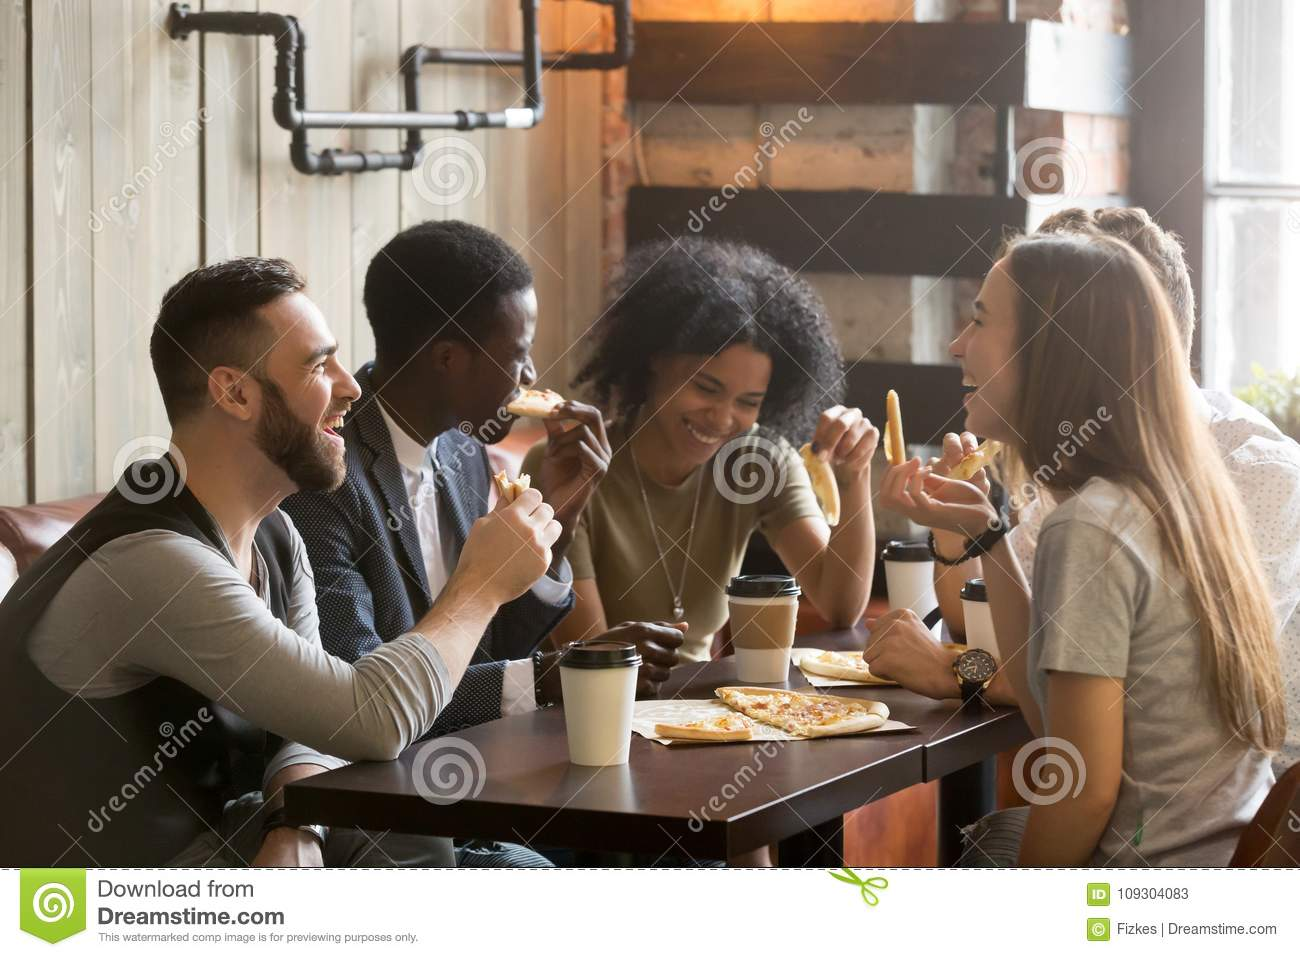 Multiracial happy young people laughing eating pizza together in